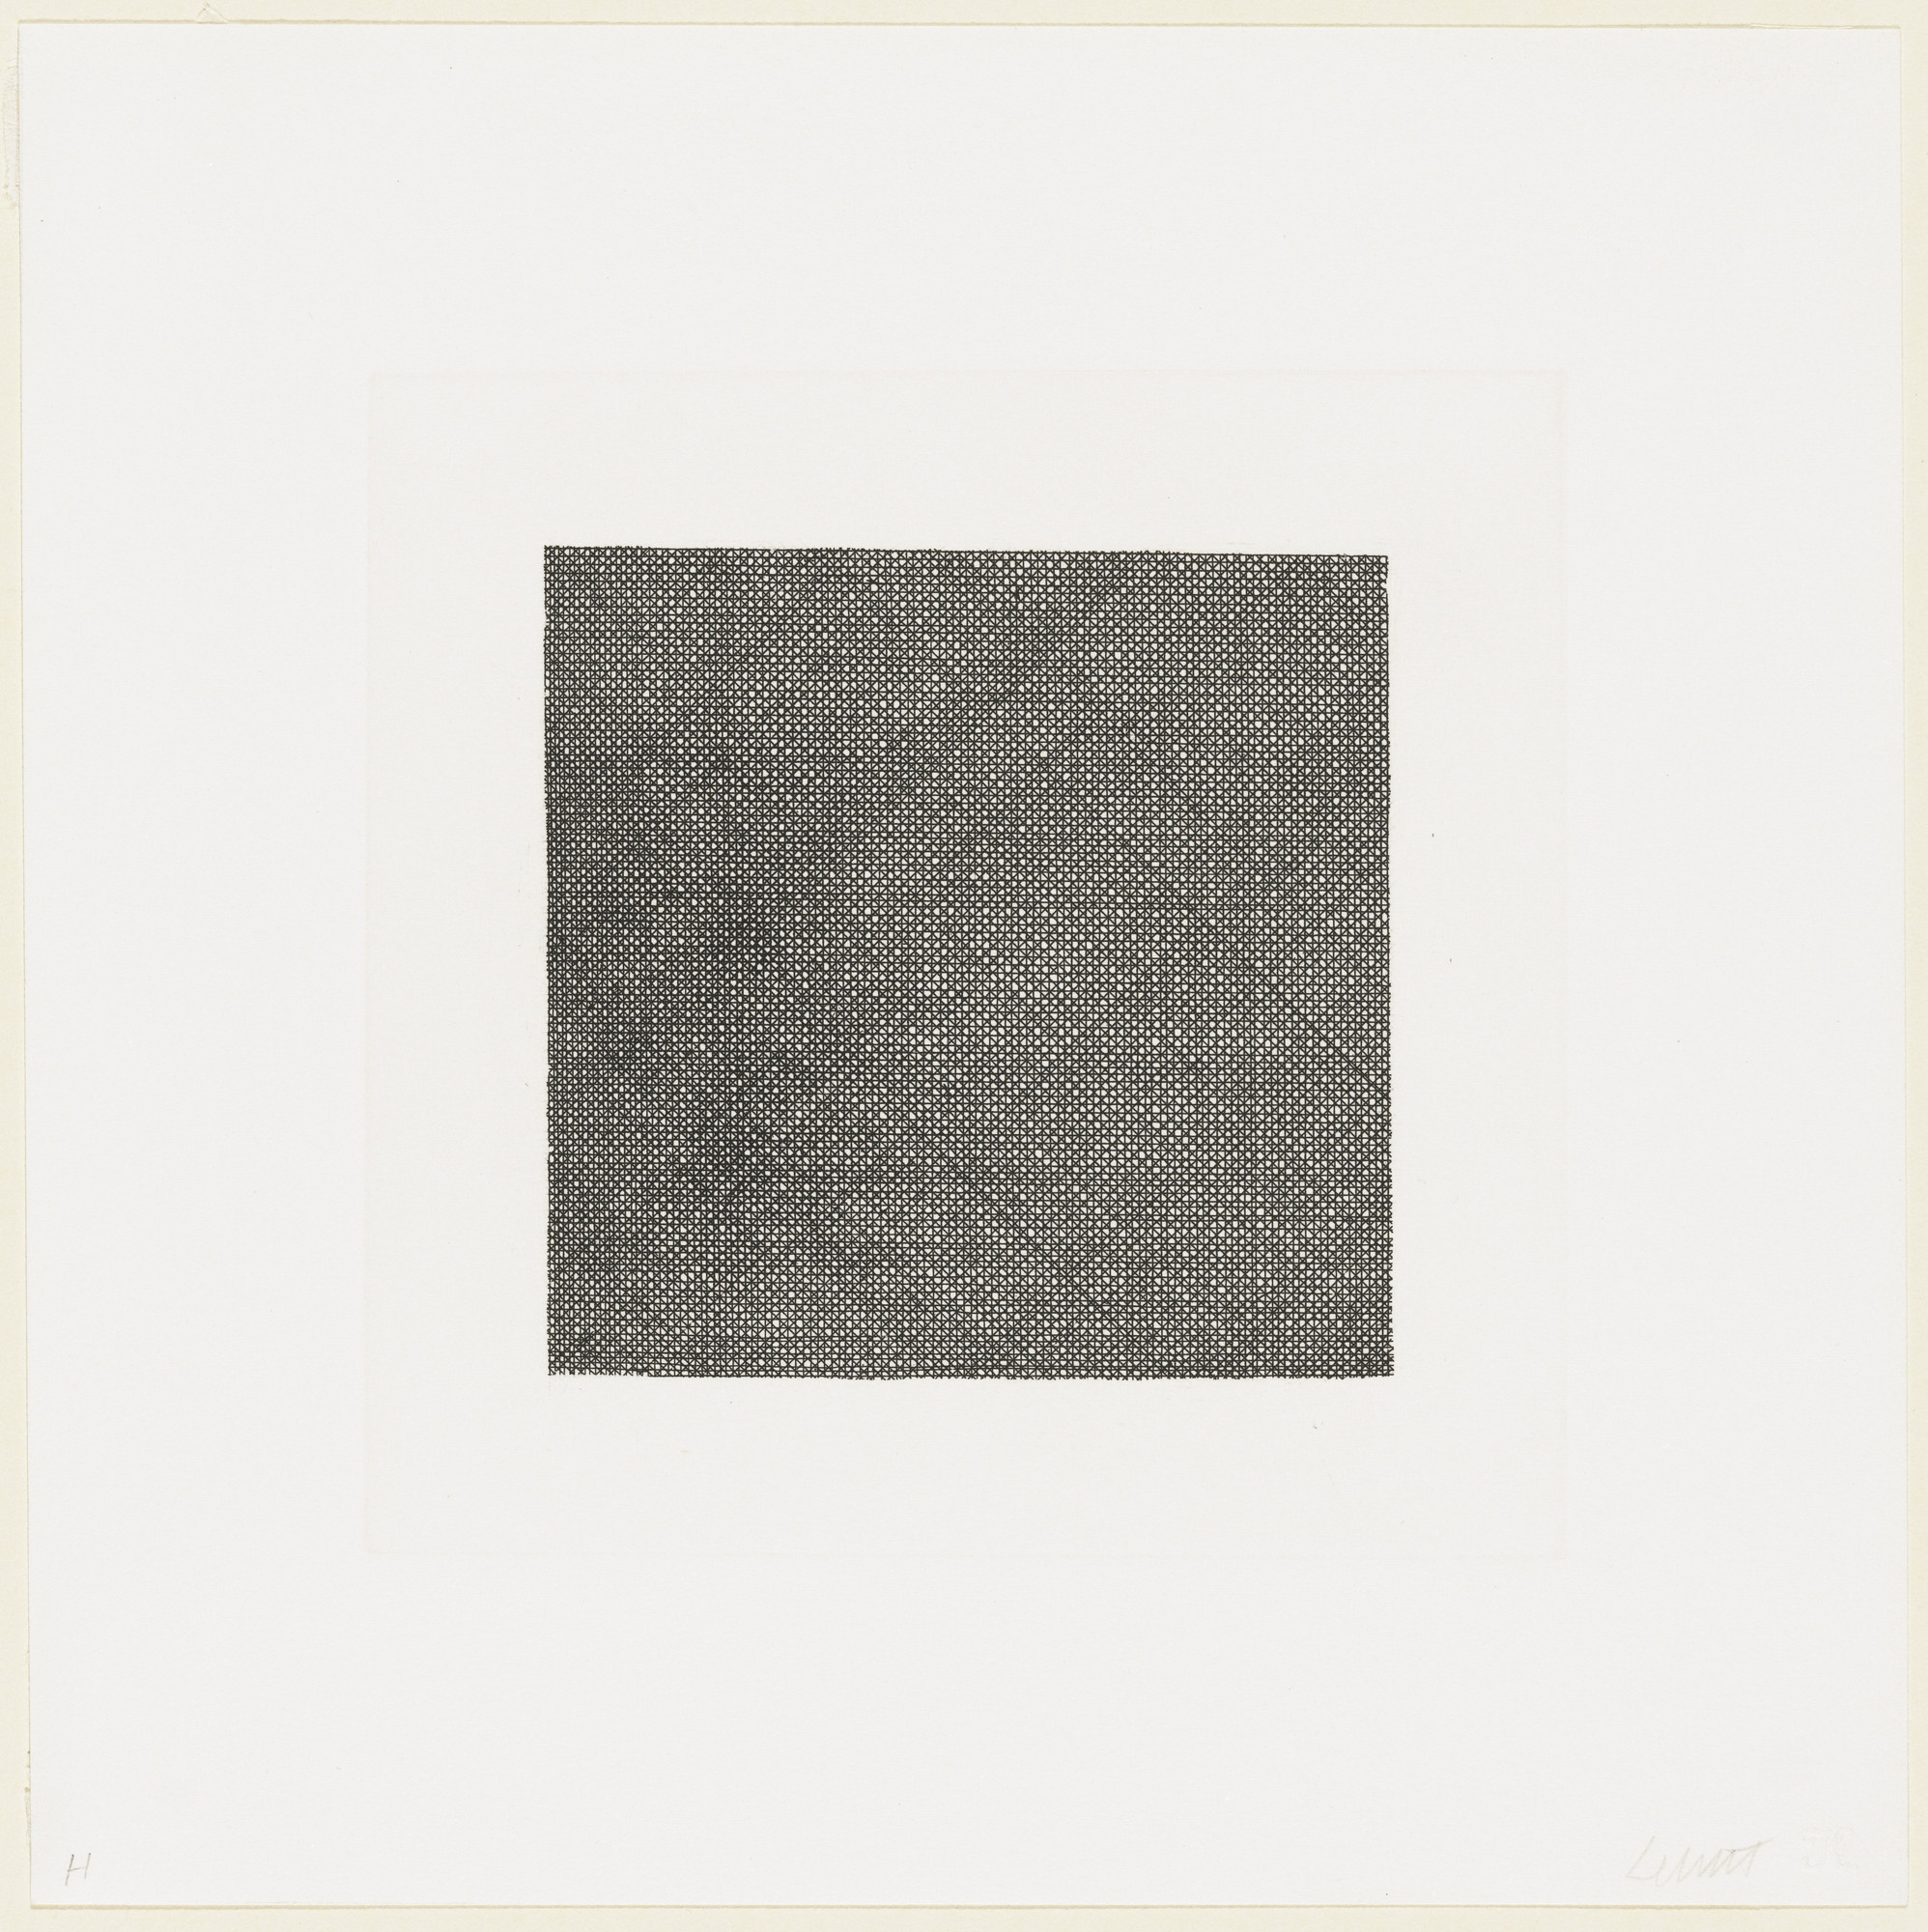 Sol LeWitt. Lines in Four Directions, Superimposed. 1971